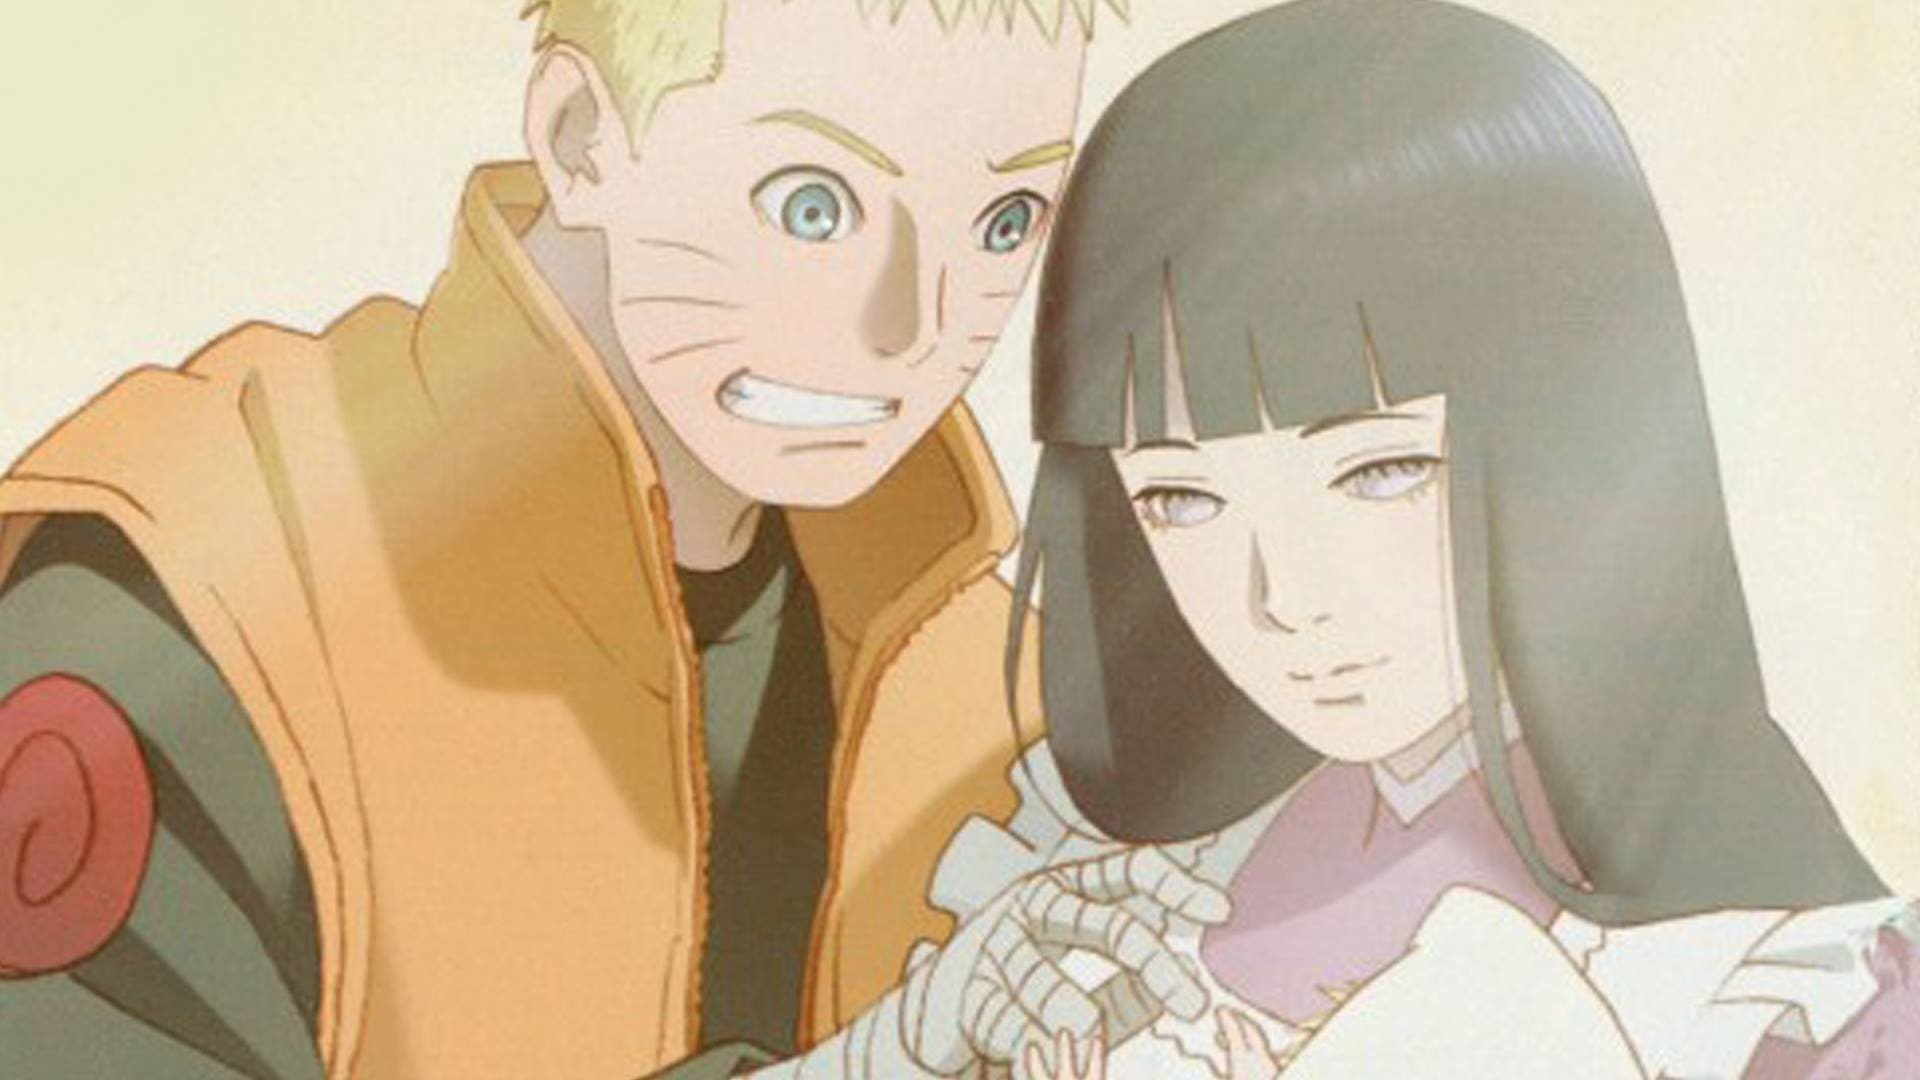 The dating game chapter 19 a naruto fanfic. un refugio para el amor 142 online dating.